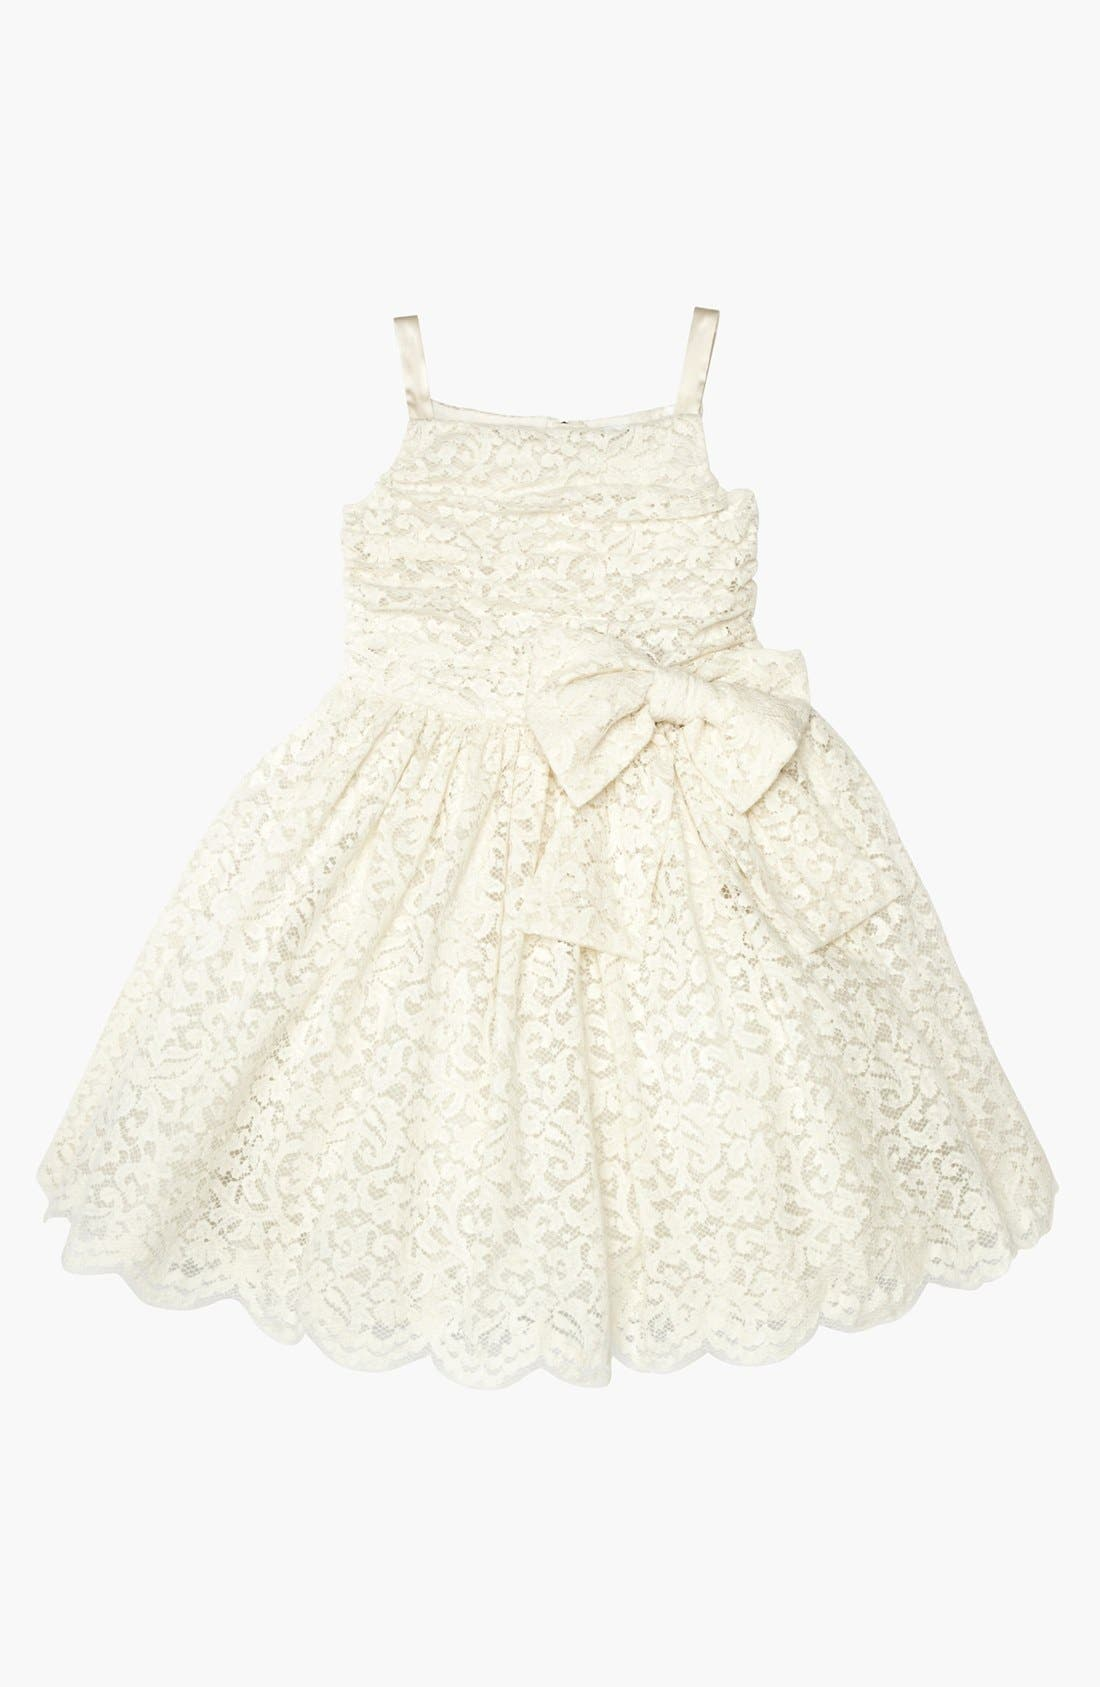 Alternate Image 1 Selected - Dolce&Gabbana Lace Party Dress (Little Girls & Big Girls)